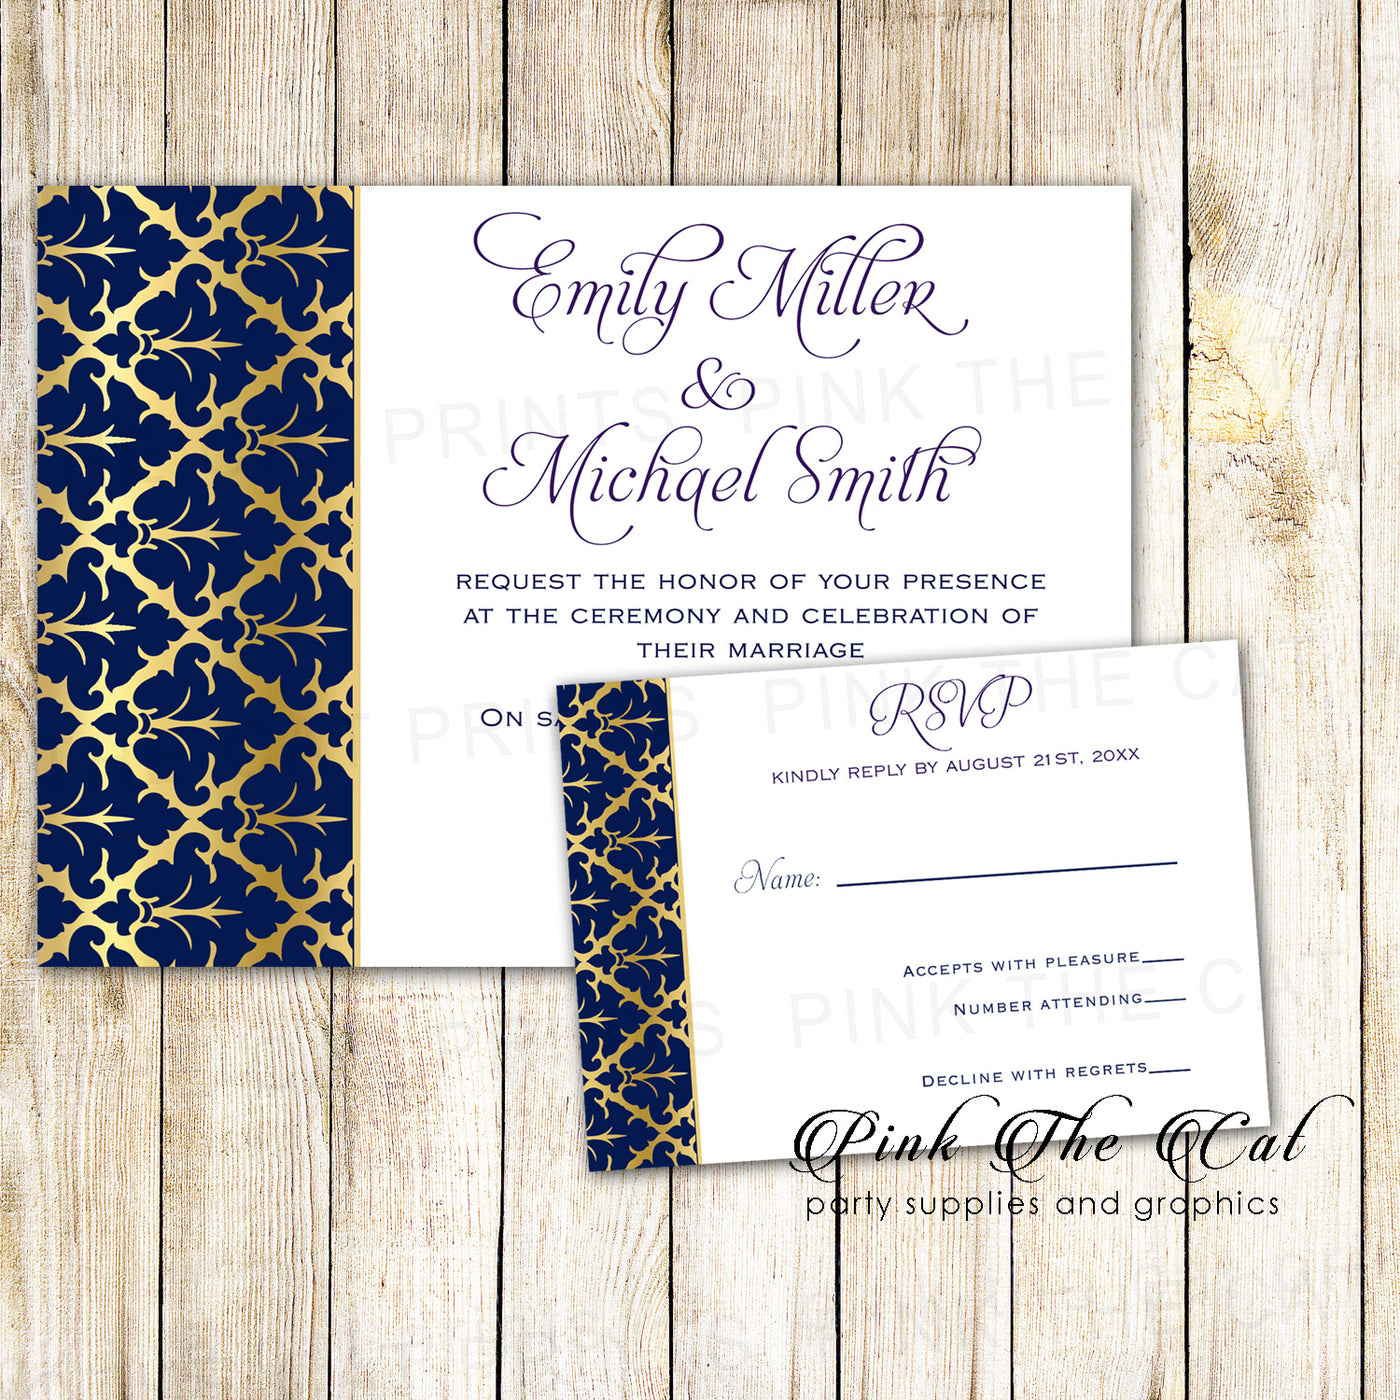 250 wedding invitations navy blue gold & response cards personalized – Pink  the Cat